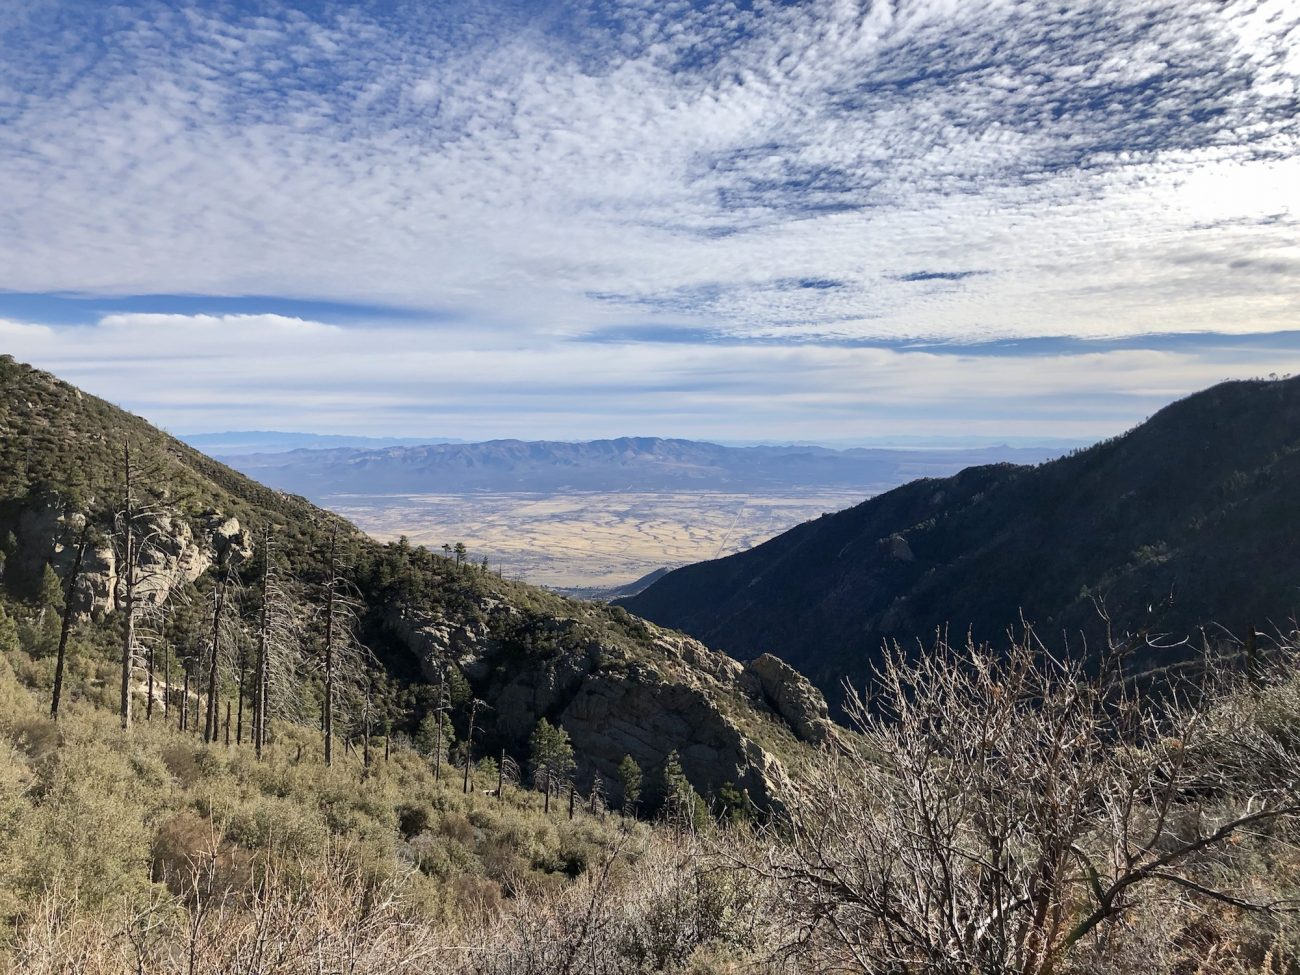 View out over the valley on the Crest Trail near Miller Peak